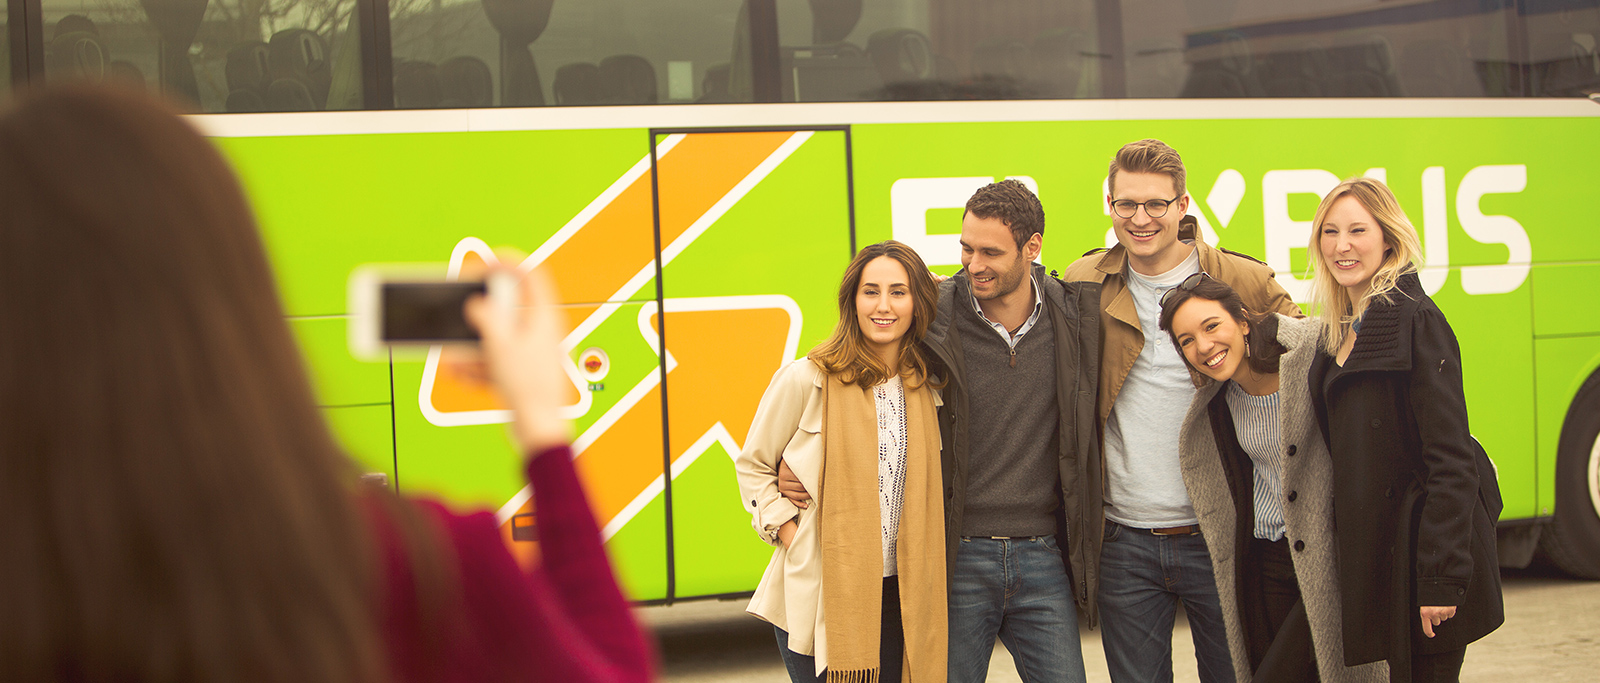 Group of friends in front of a FlixBus